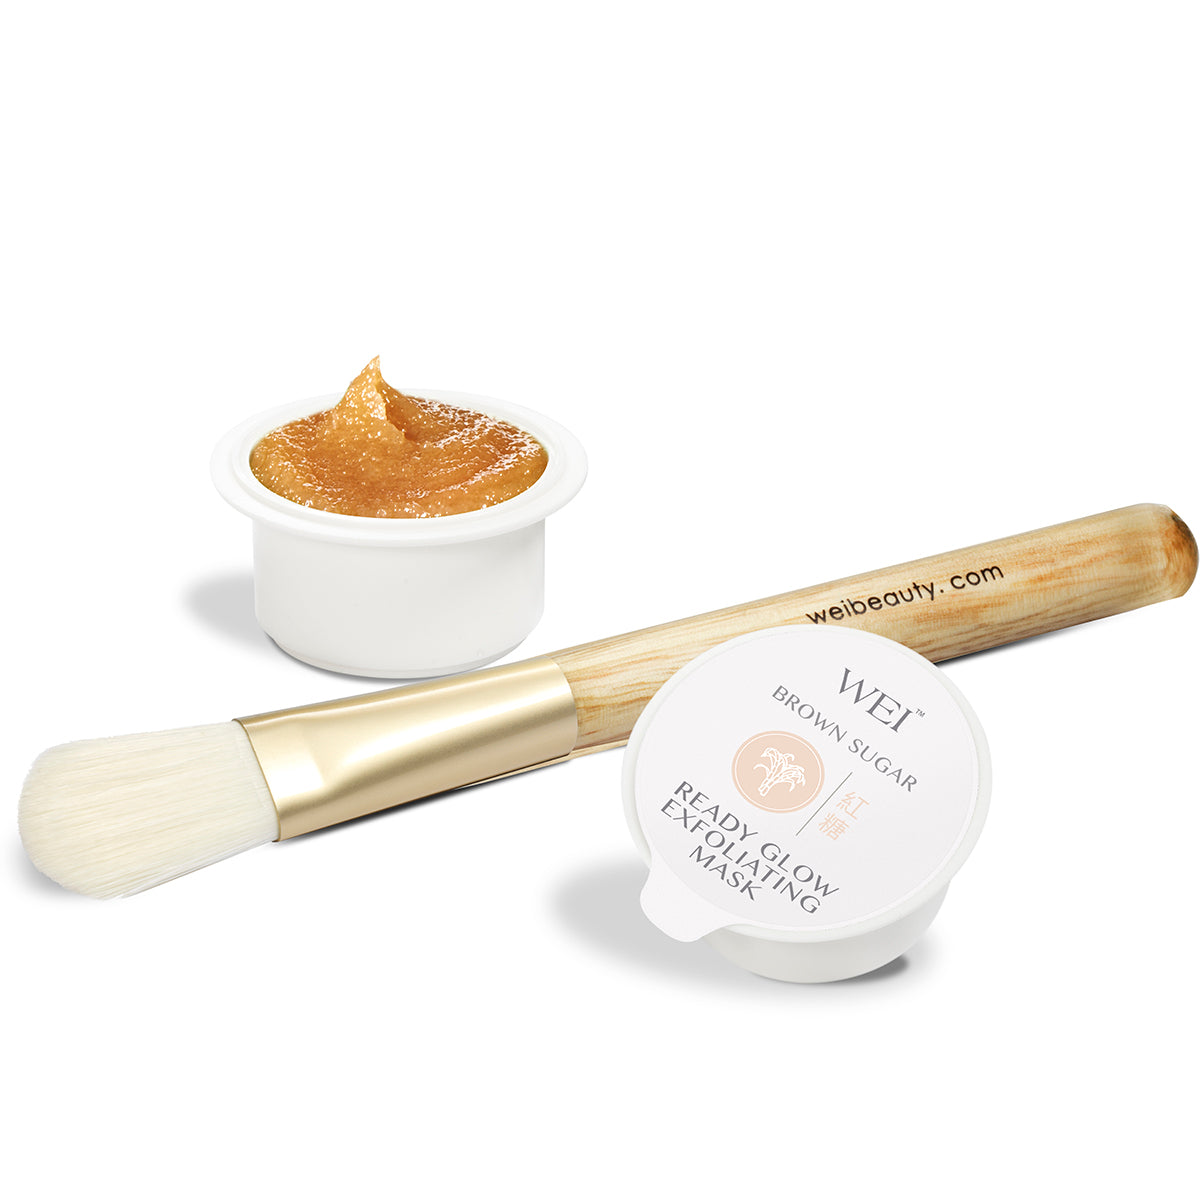 Brown Sugar Ready Glow Exfoliating Mask with brush applicator